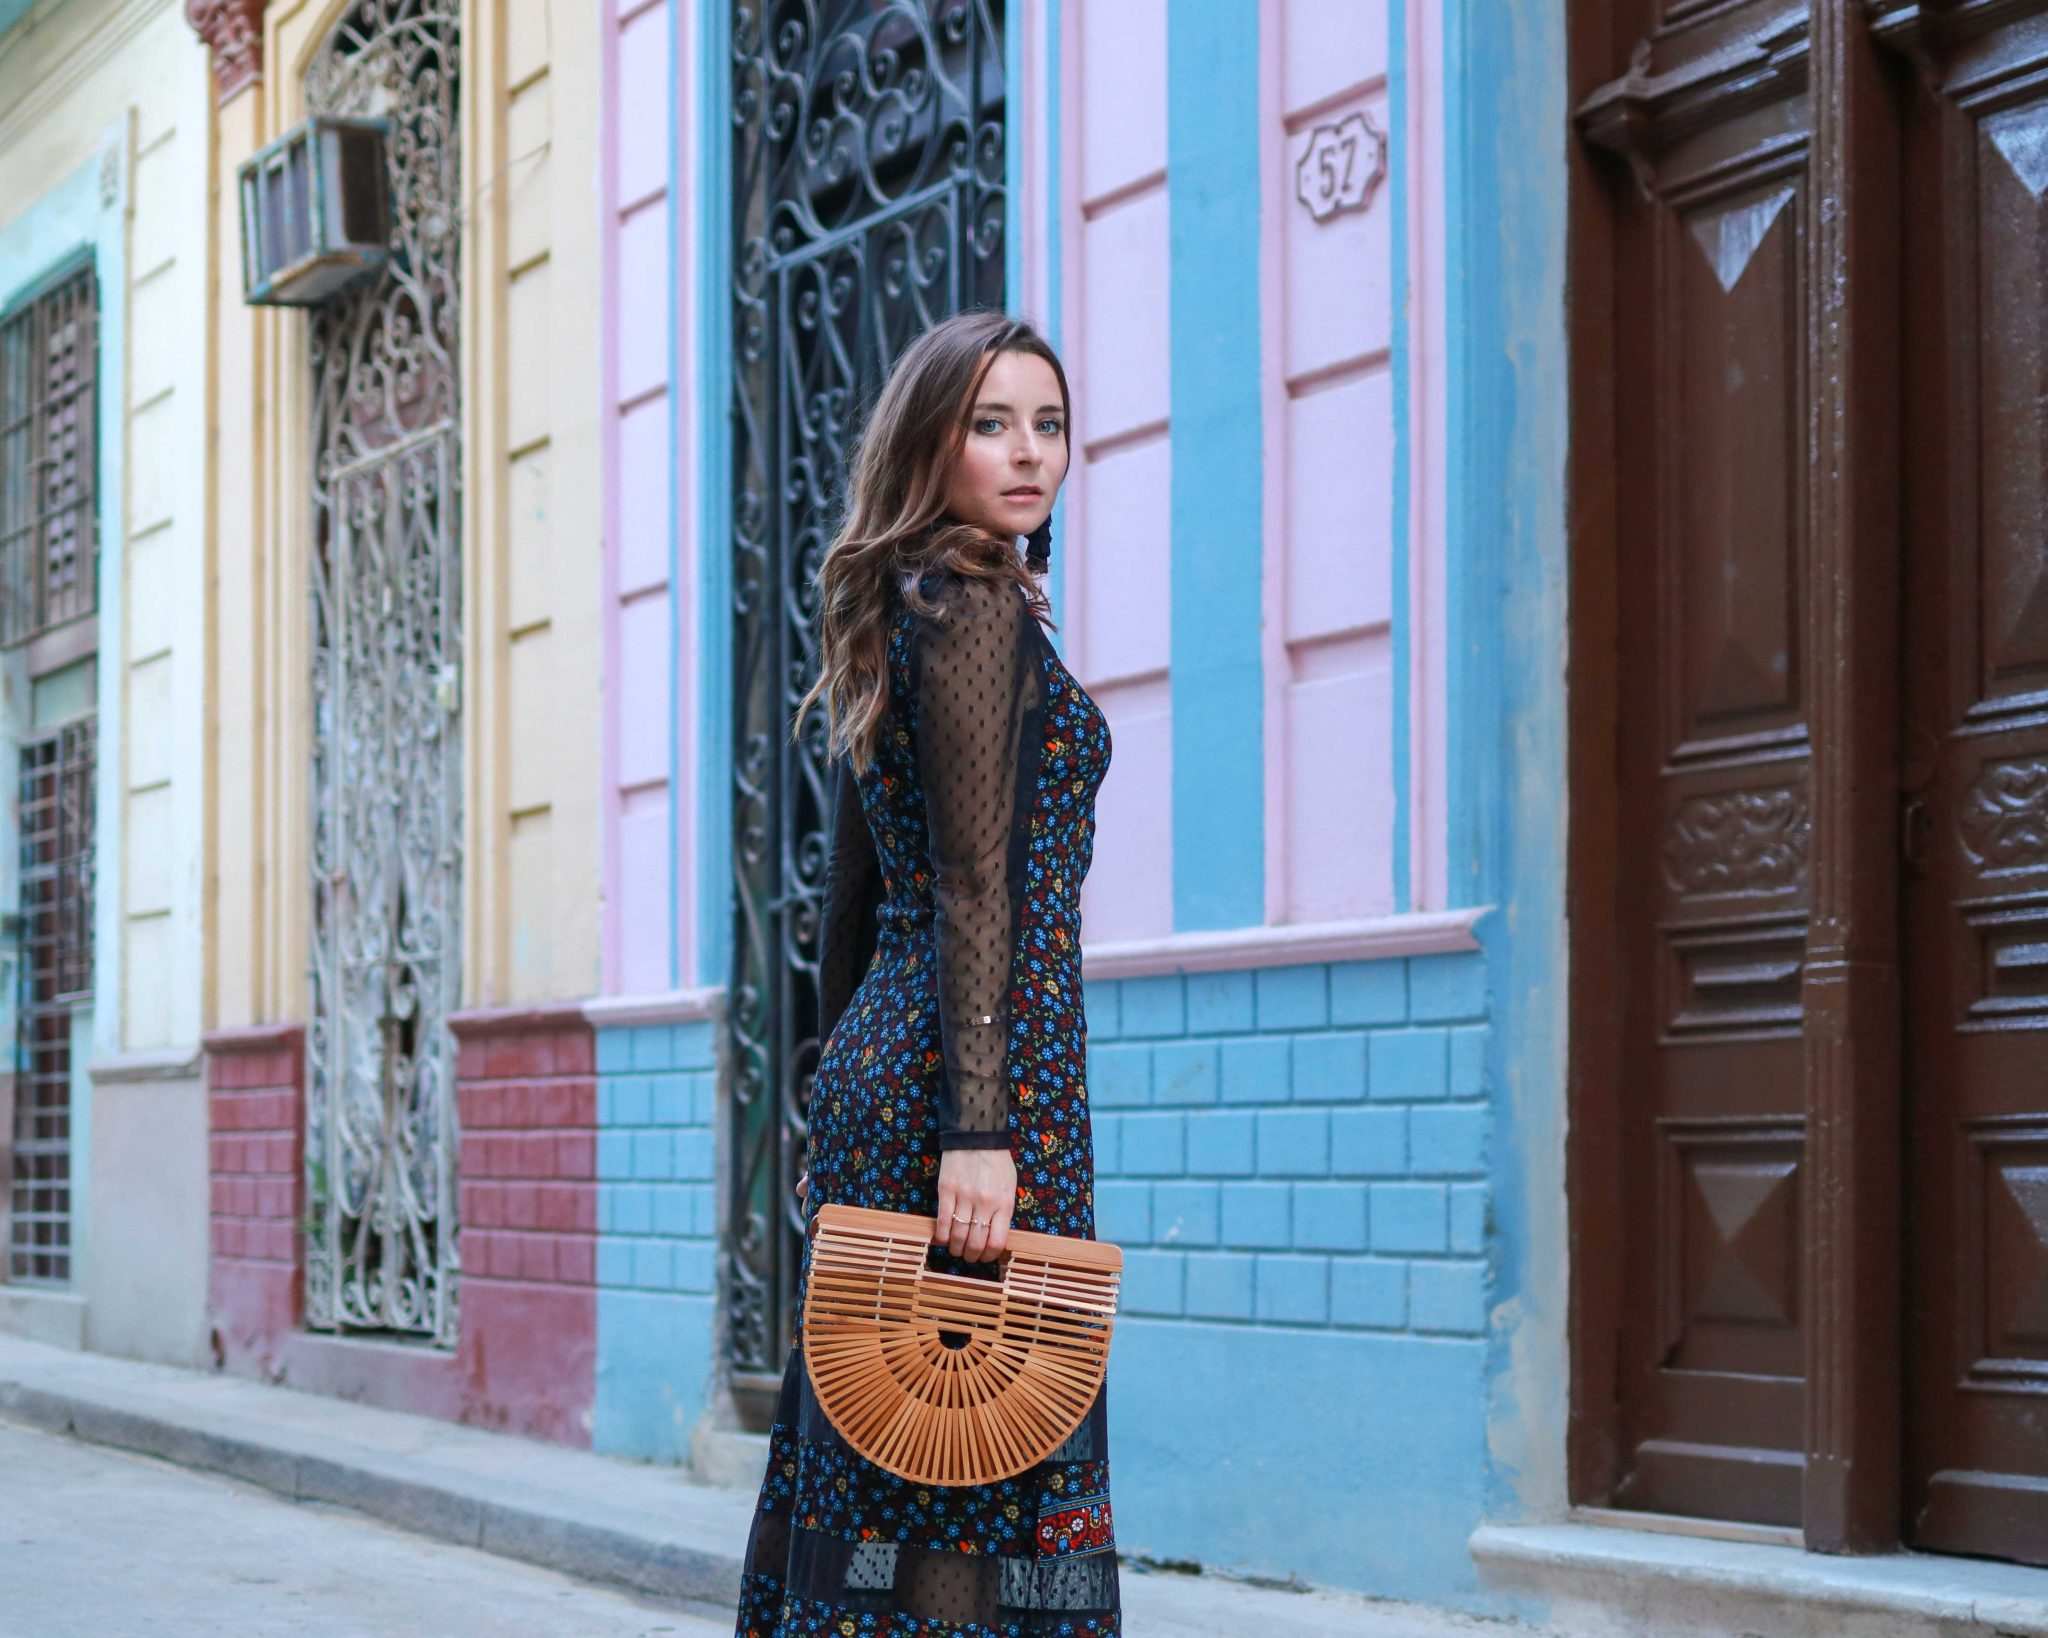 Folk Long Dress and Arc Bamboo Bag Small by Cult Gaia - Cuba Fashion Diaries: The Winter dress from Maje Paris. Rezia: A long dress perfect for the petite silhouette. By French fashion blogger. Inspirations and more on Houseofcomil.com